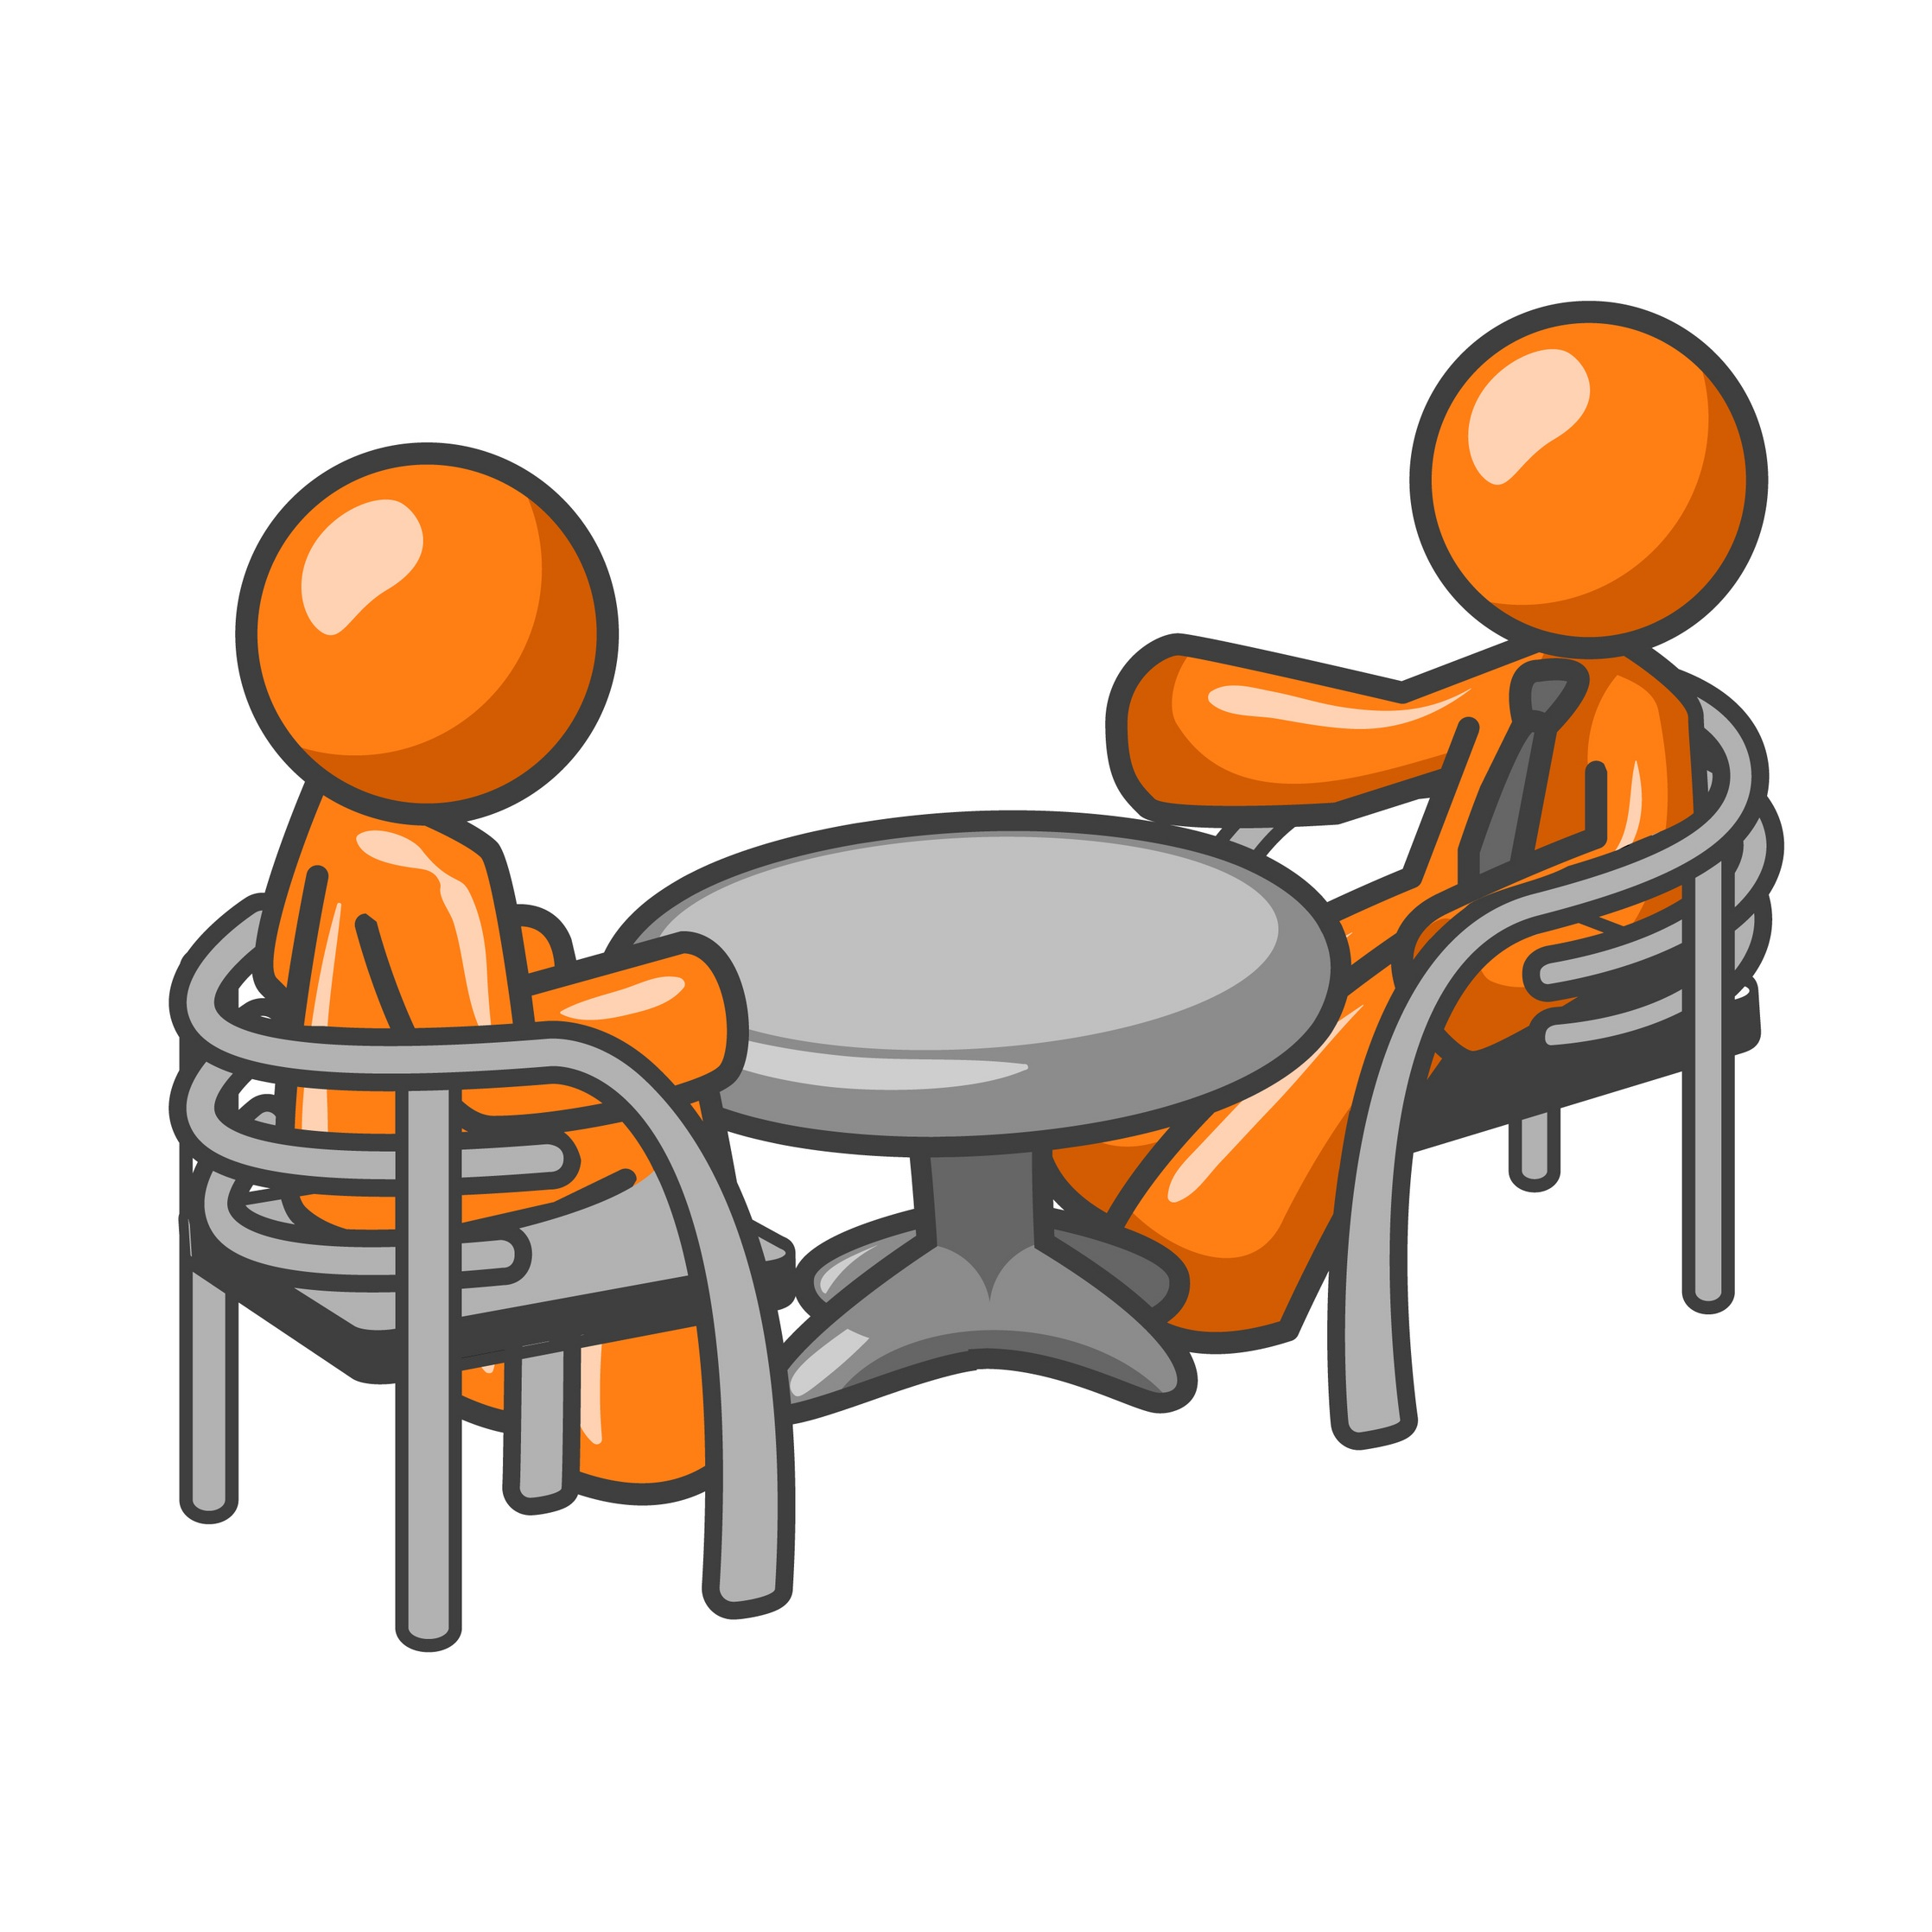 2236x2236 One On One Interview Clipart